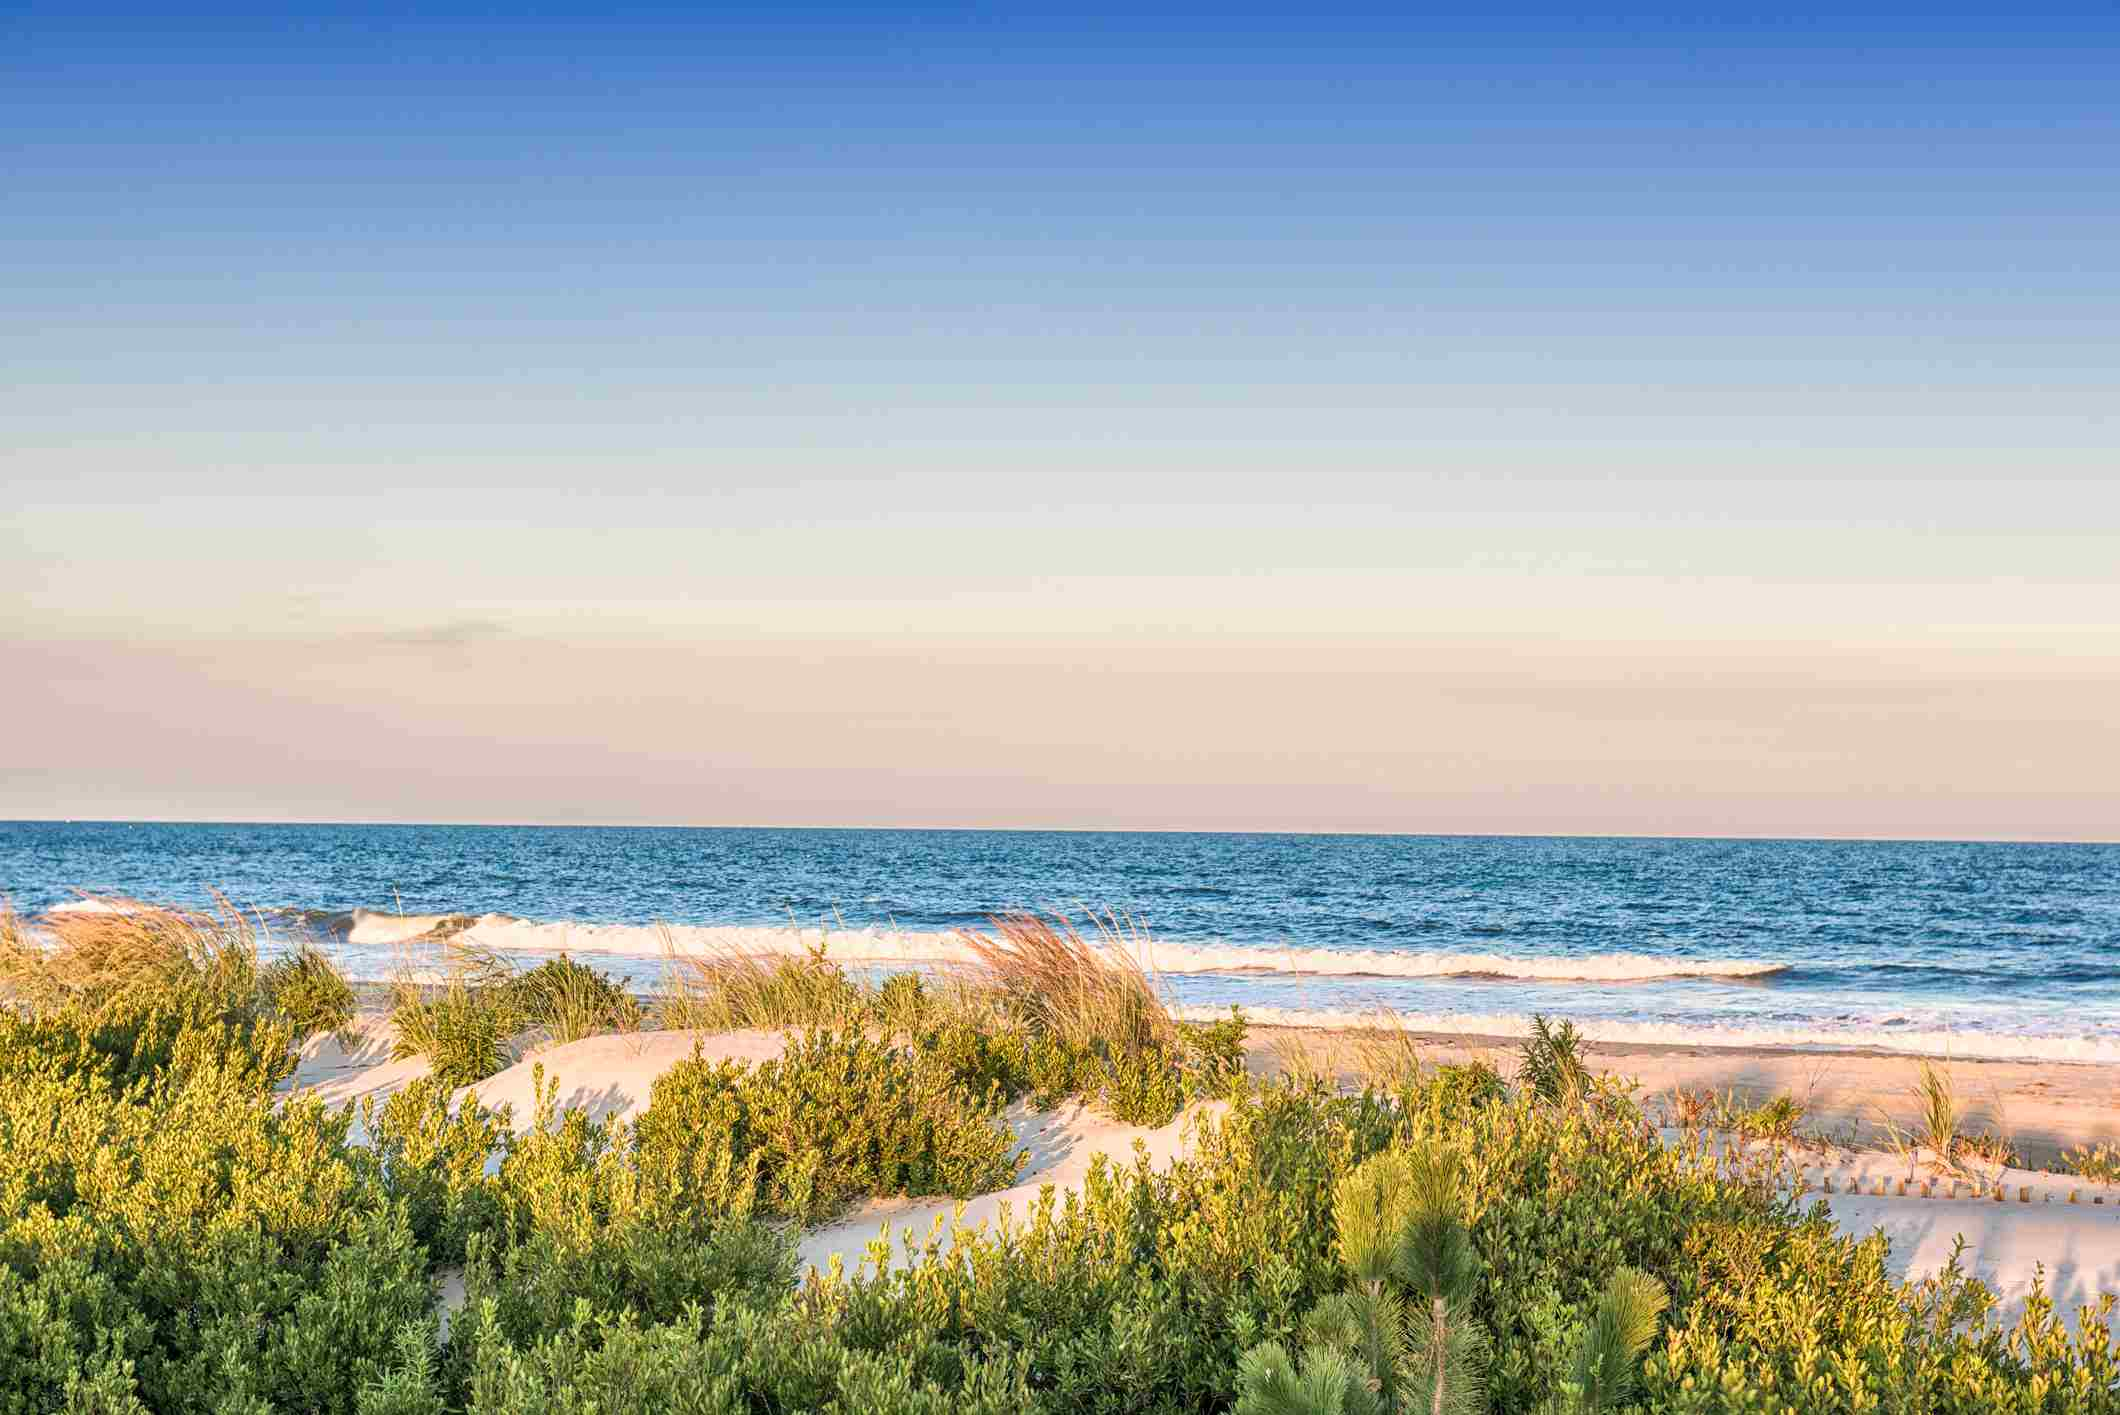 South Jersey Beaches: From LBI to Cape May Point